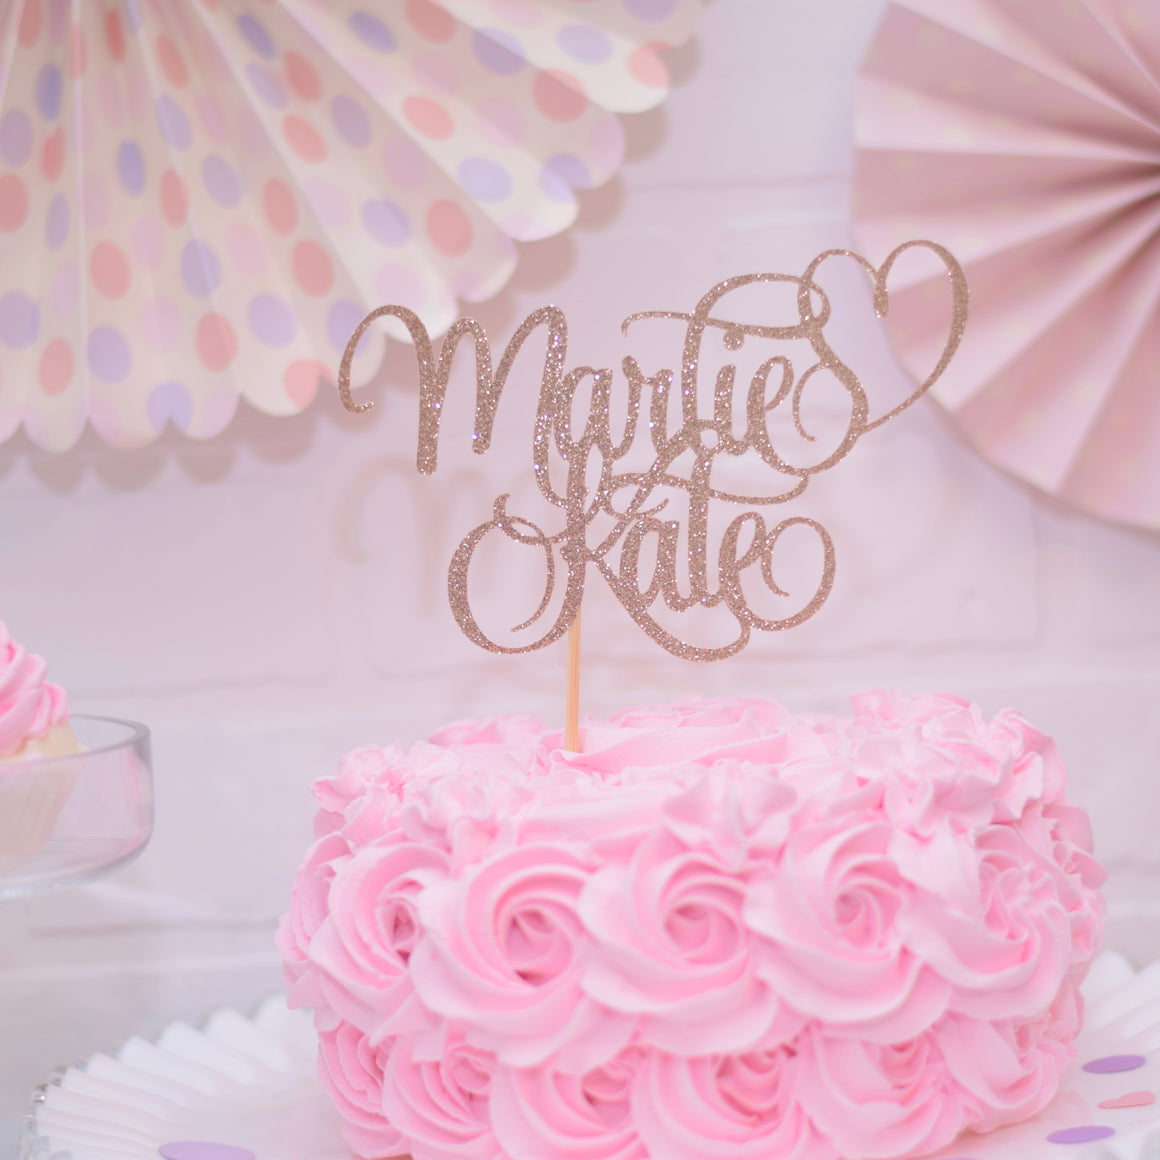 Personalized Name Cake Topper With Any 2 Words Included with Heart